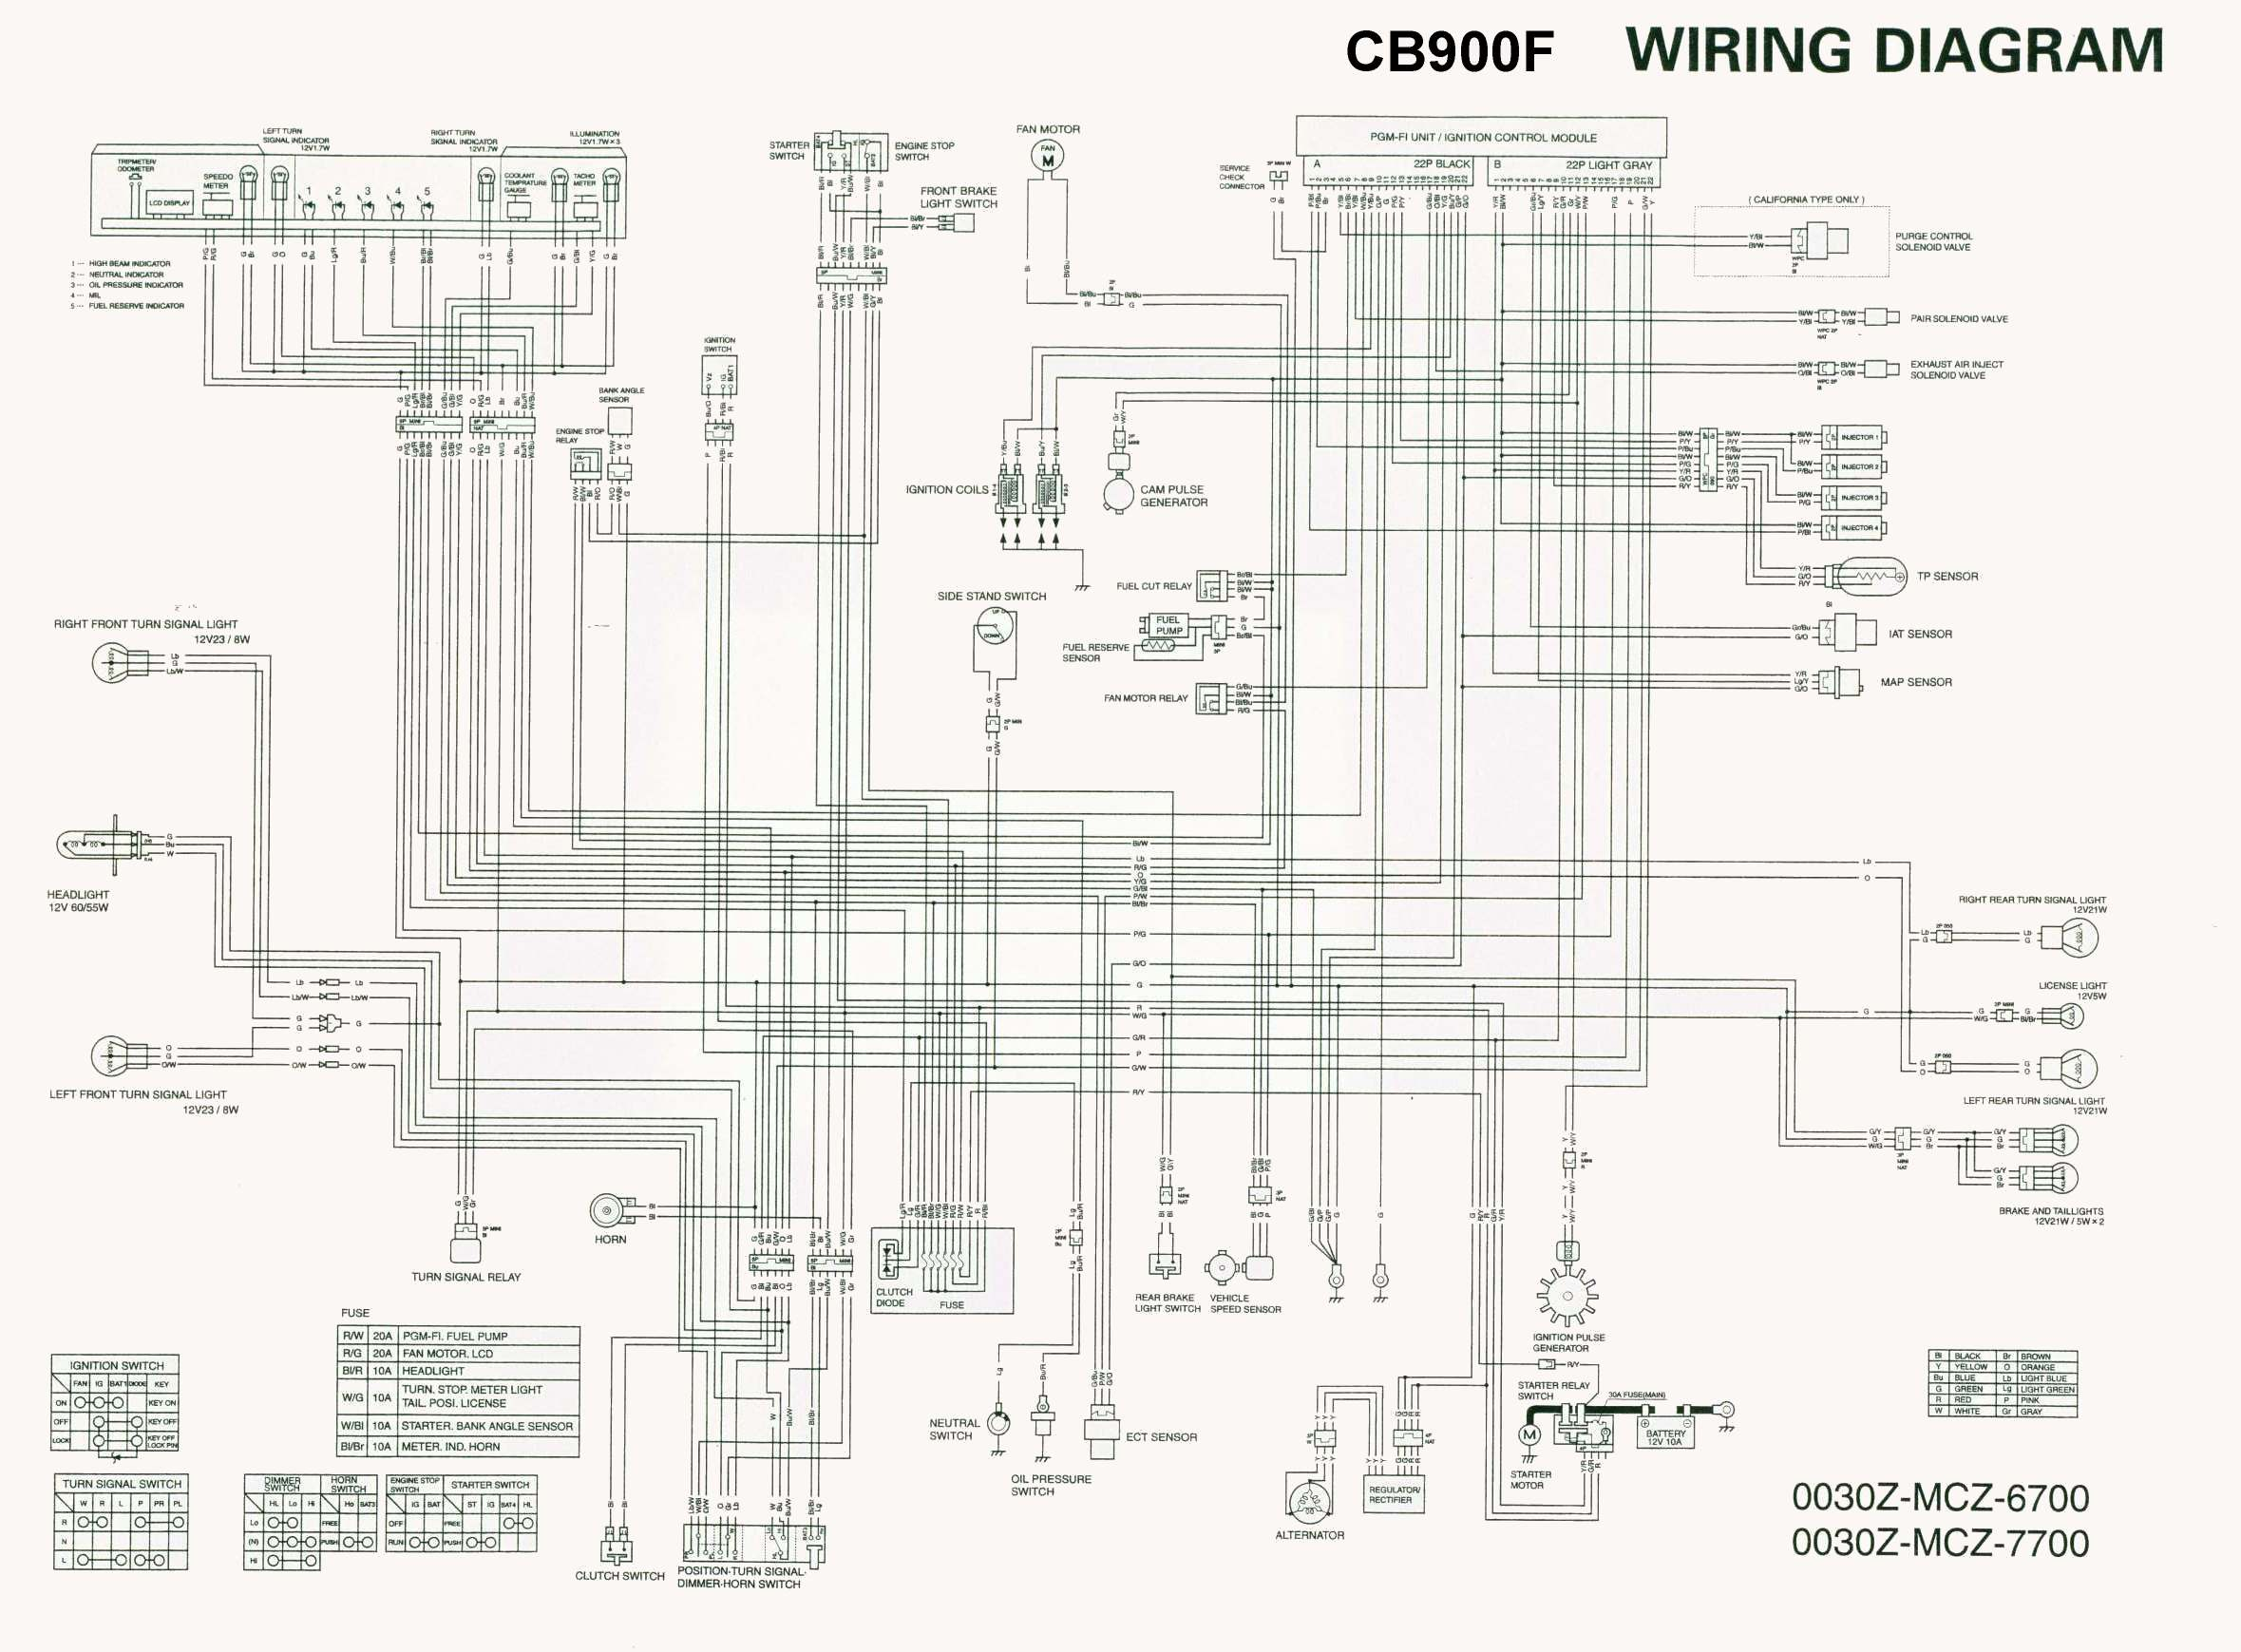 [WRG-3209] Wiring Diagram For 72 Super Glide